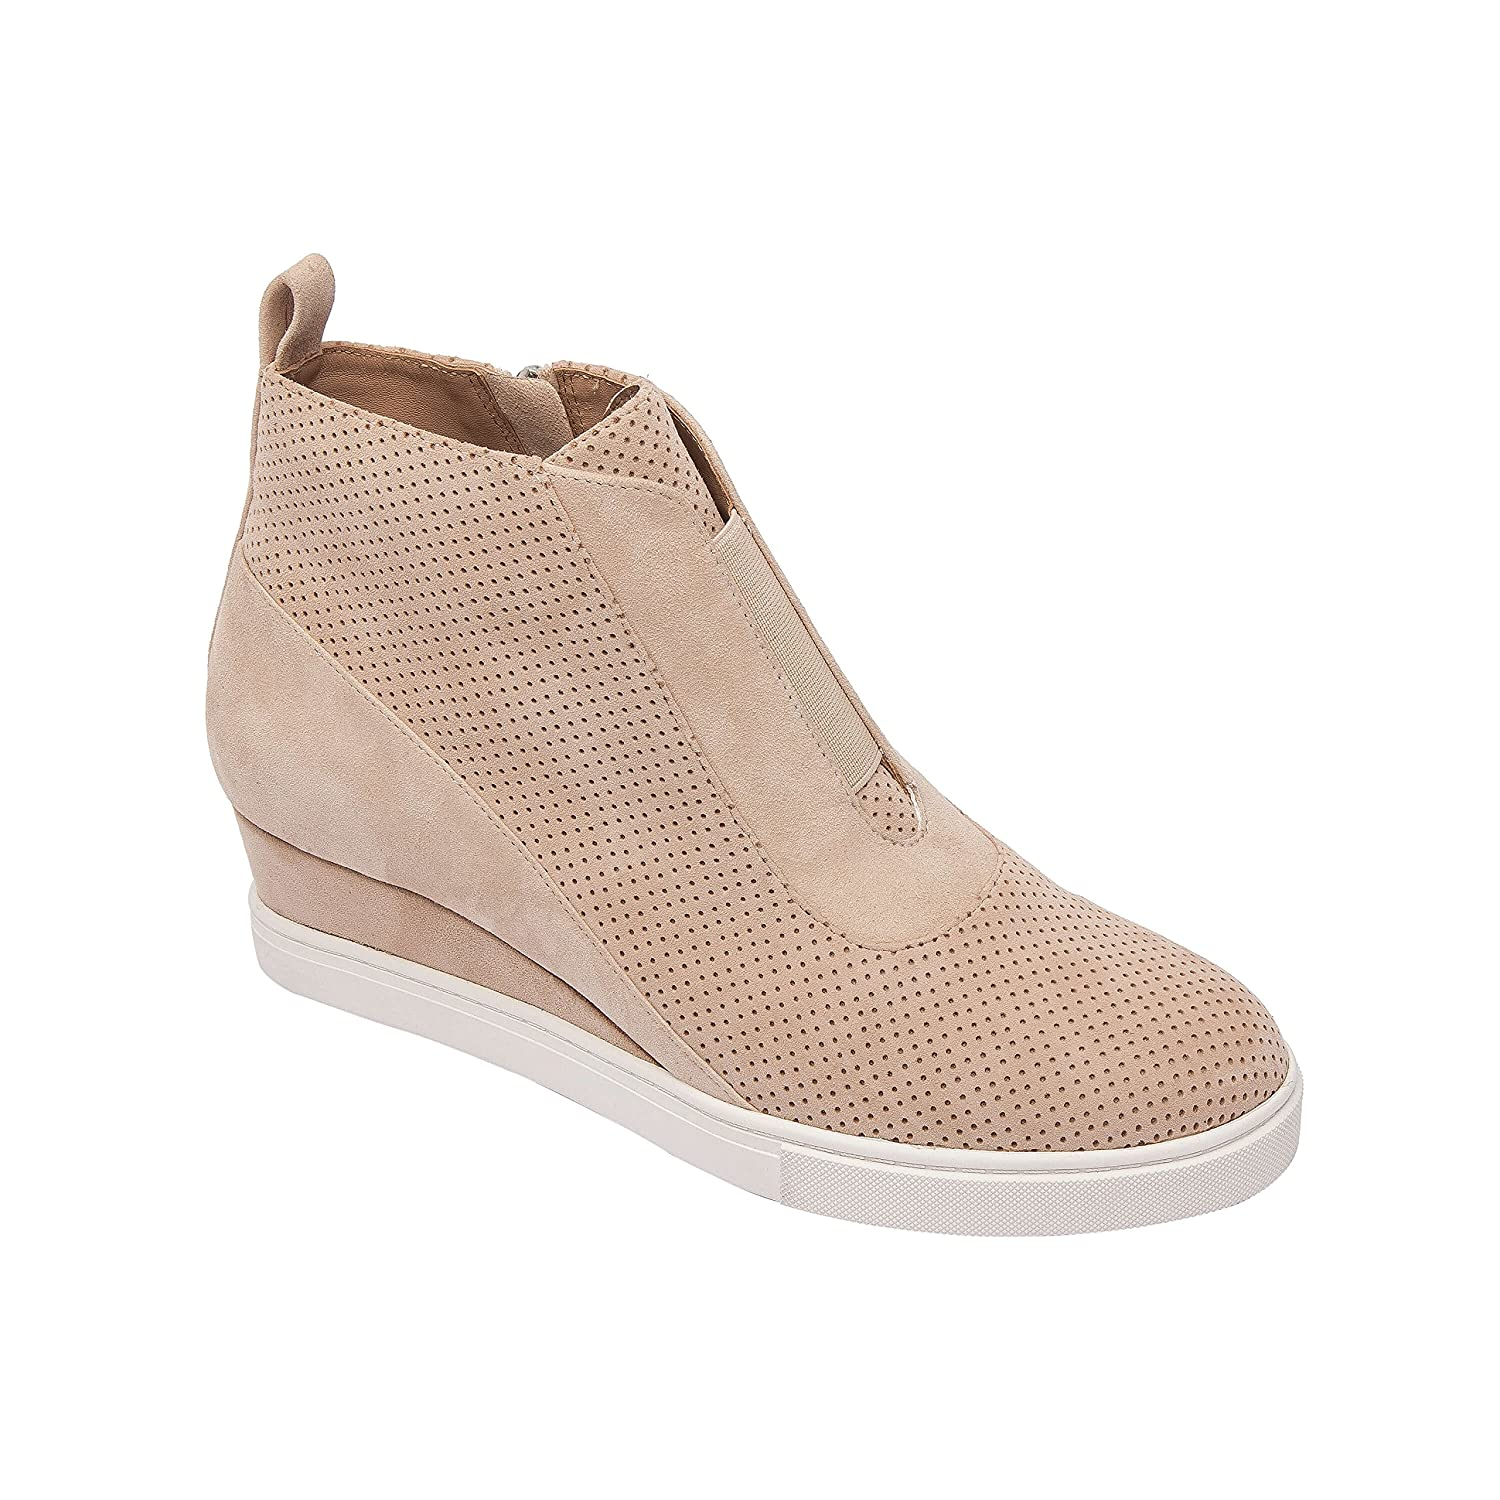 Linea Paolo Anna | Low Heel Designer Platform Wedge Sneaker Bootie Comfortable Fashion Ankle Boot (New Fall) B07F6RV7G6 5 M US|Pink Perforated Suede